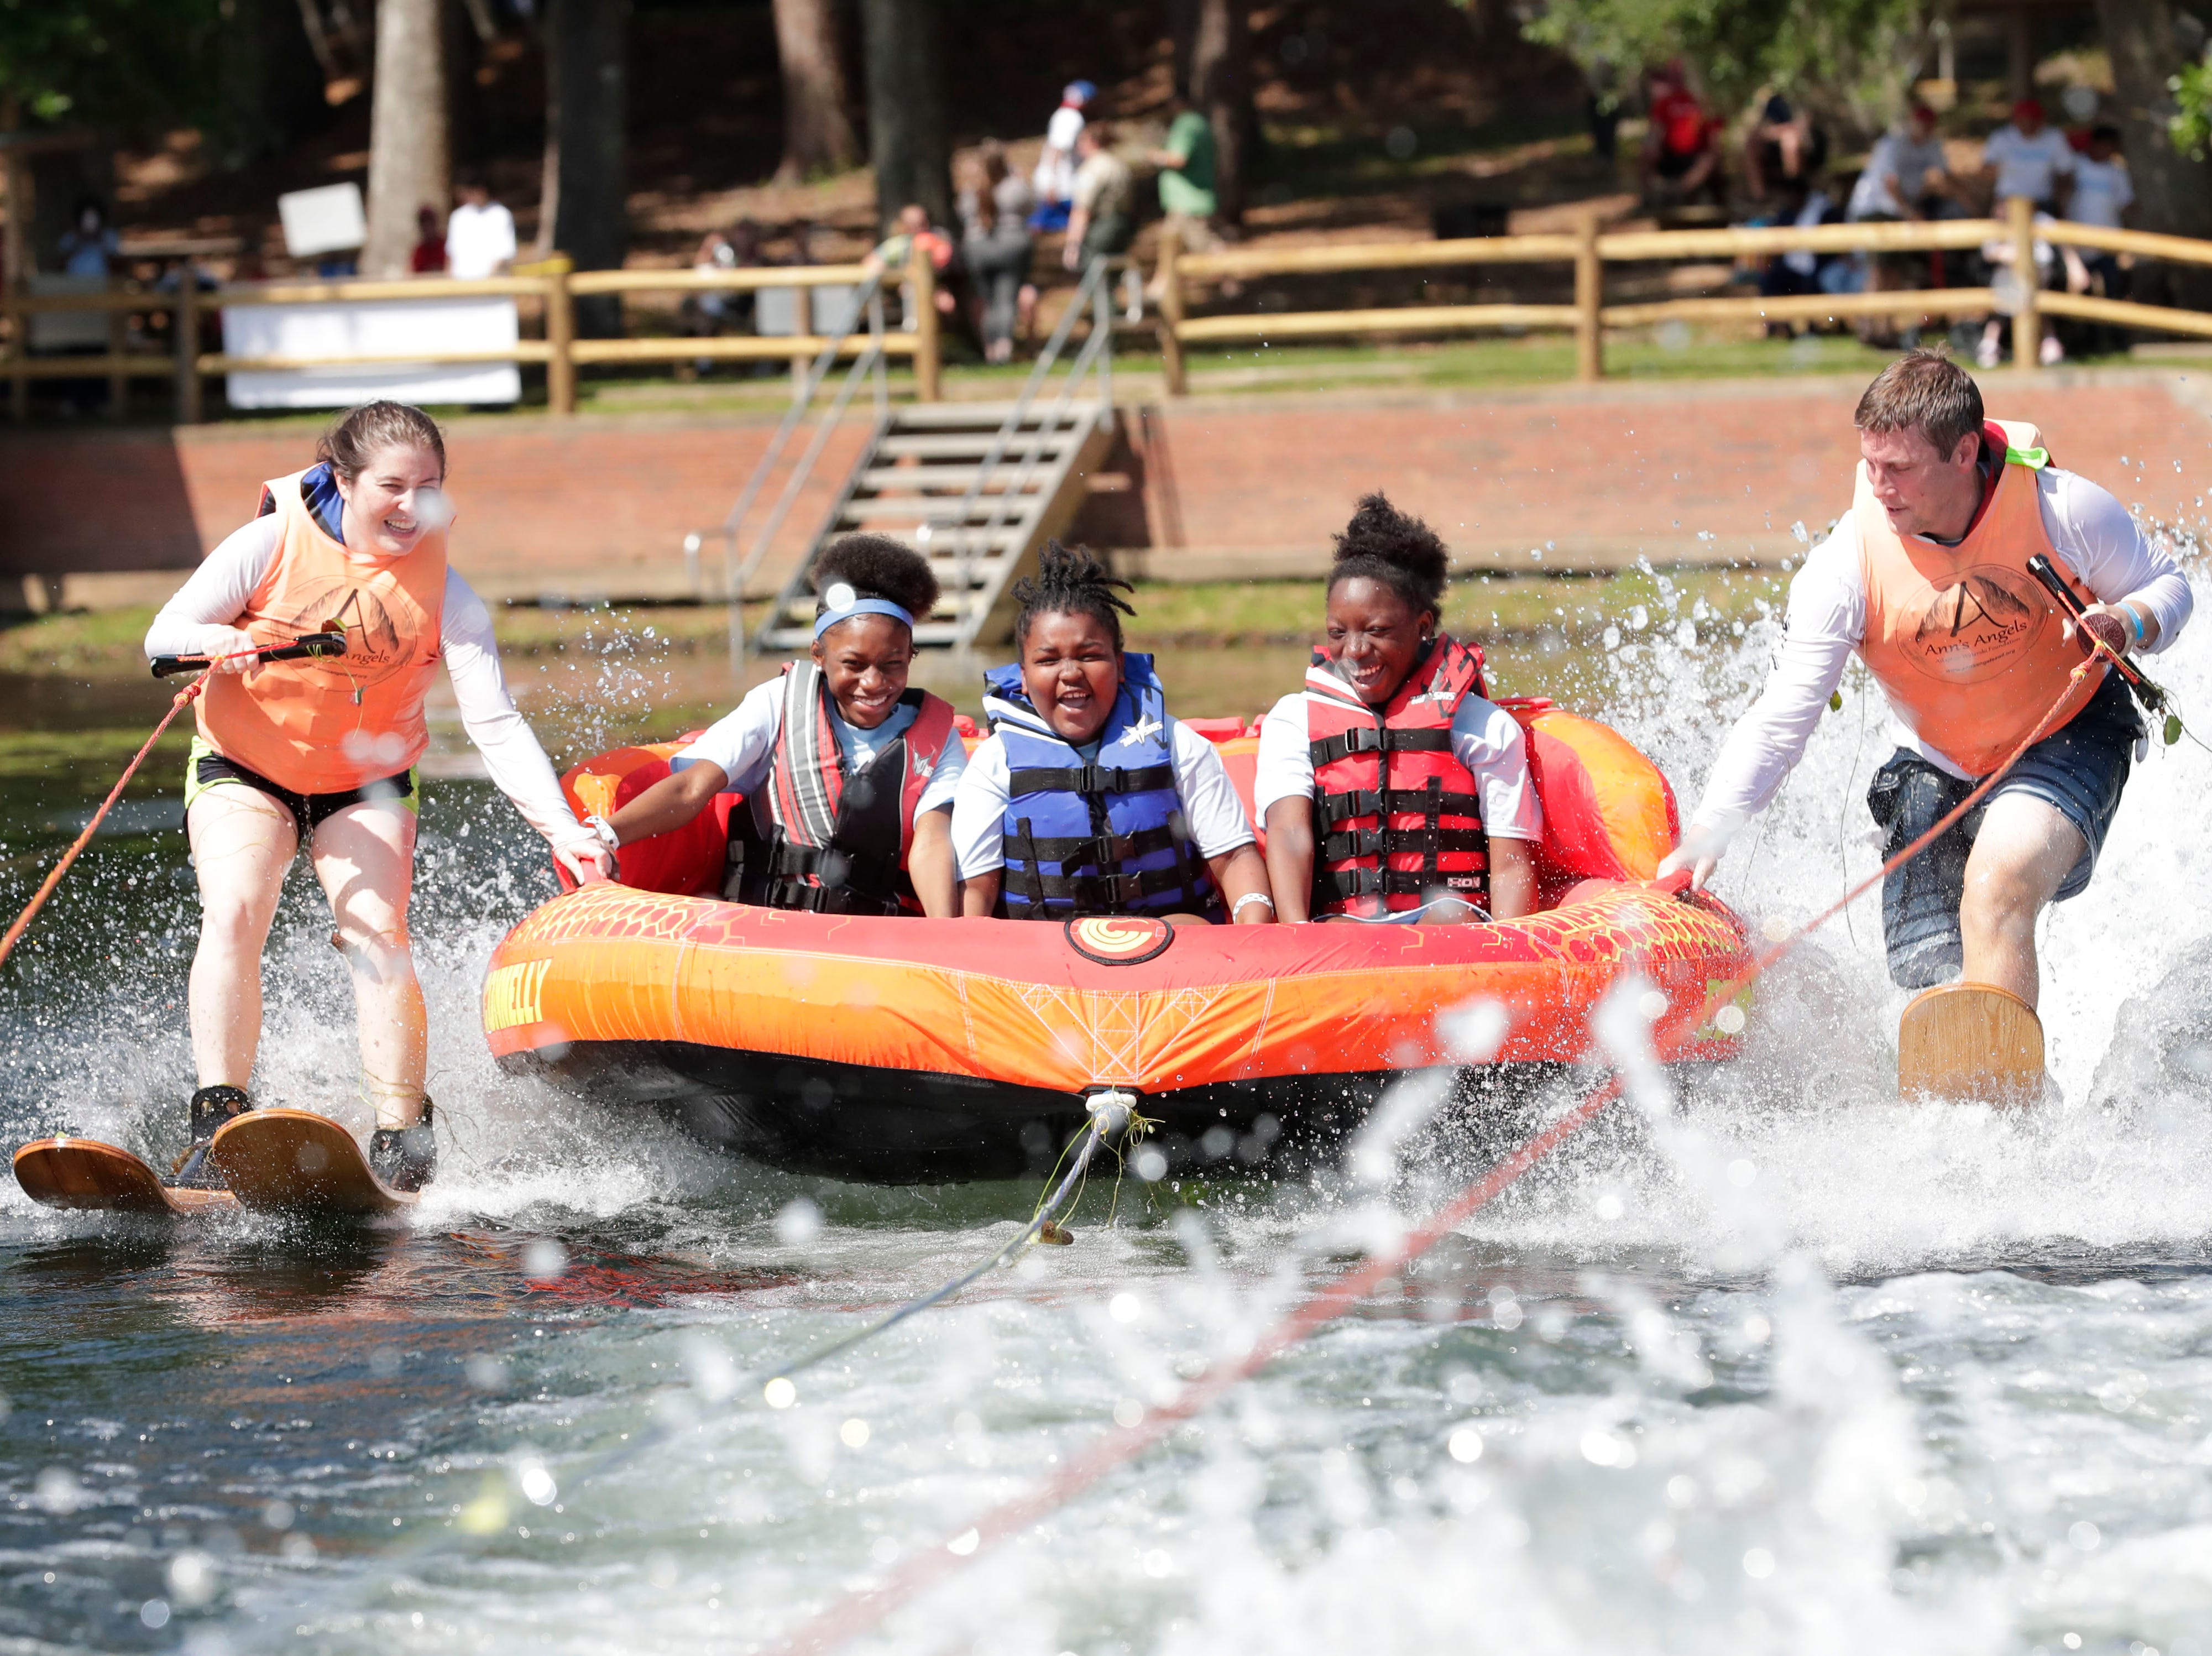 De'Ayja Arnett, 14, second from left, Adrian Gordon, 8, and Destyne Arnett, 12, tube on the water during SportsAbility, a program with the Florida Disabled Outdoors Association, at Maclay Garden State Park Saturday,  April 13, 2019.